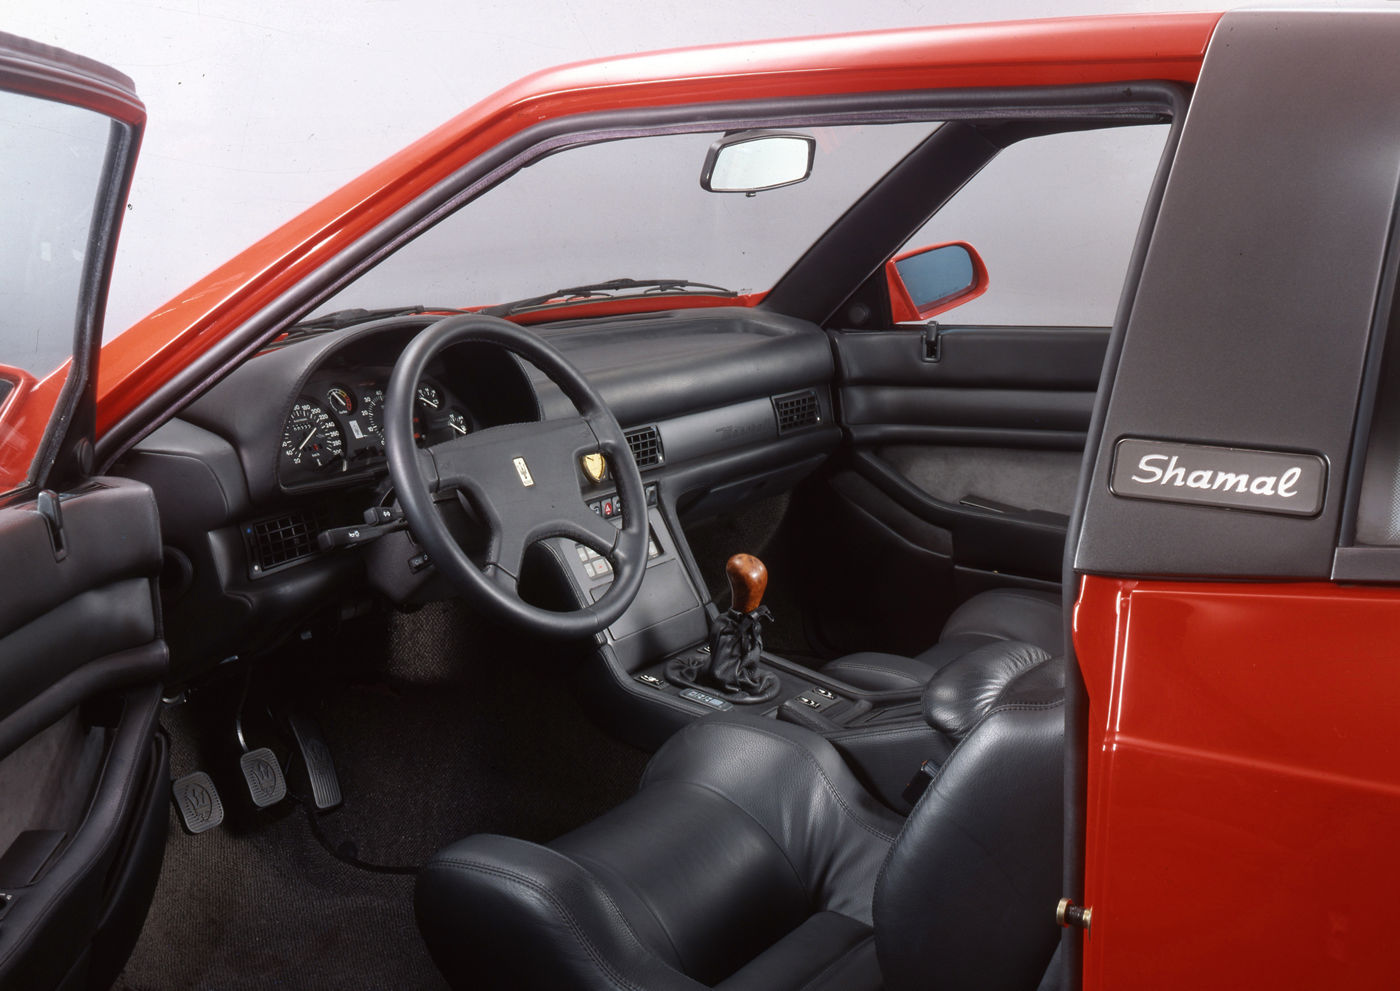 1990 Maserati Shamal - Biturbo - interior view of the classic car model